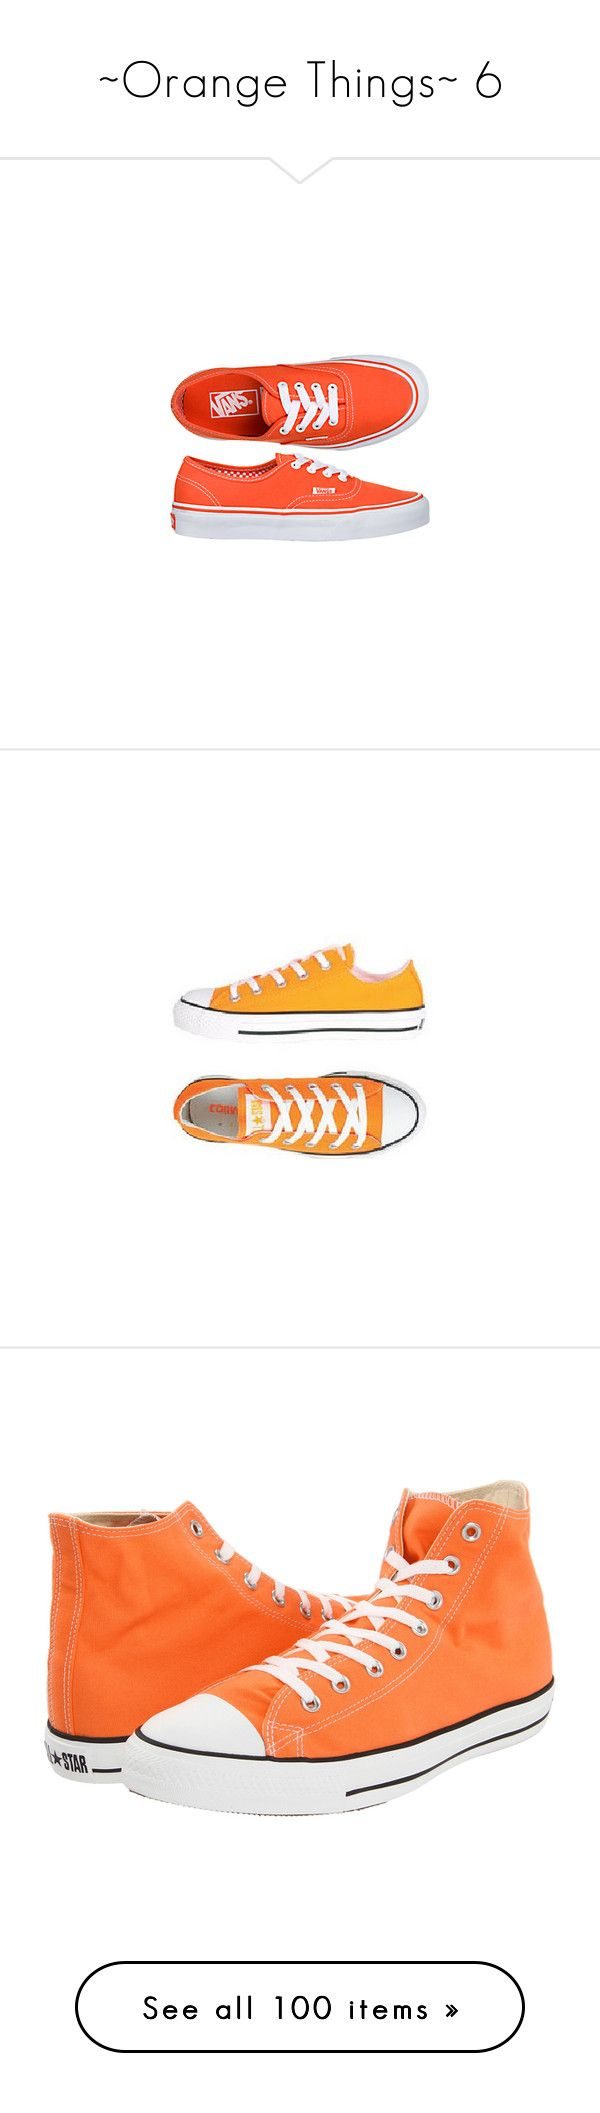 """~Orange Things~ 6"" by my-shiny-shackles ❤ liked on Polyvore featuring shoes, sneakers, vans, orange, vans footwear, orange shoes, vans sneakers, vans trainers, orange sneakers and converse"